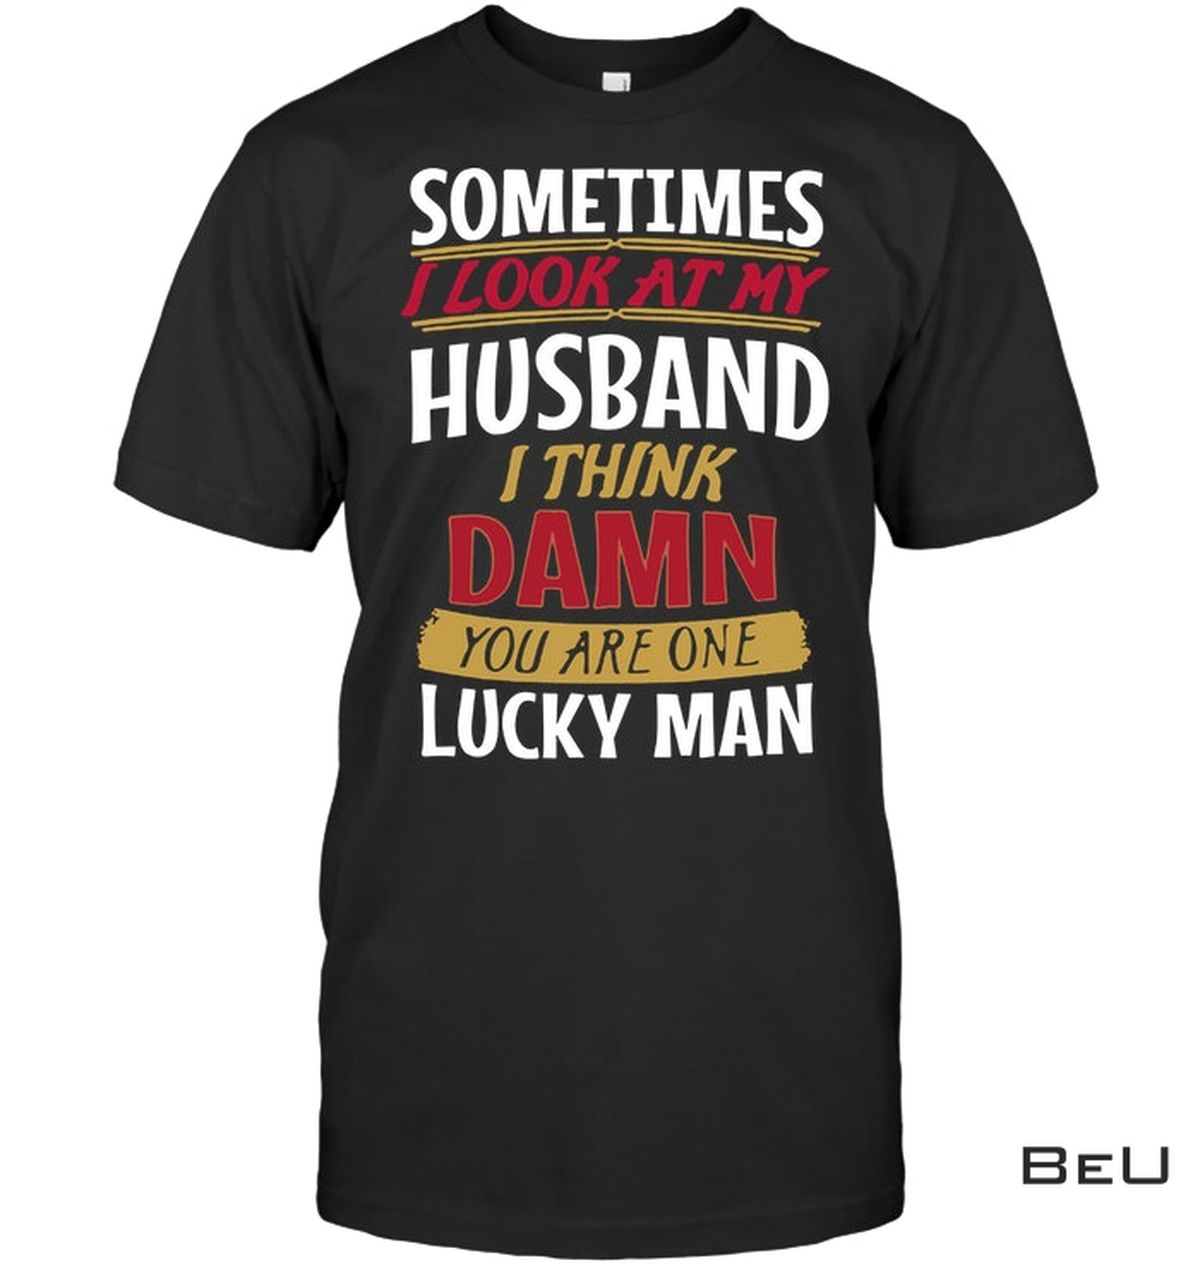 Sometimes I Look At My Husband And Think Damn You Are One Lucky Man Shirt, hoodie, tank top